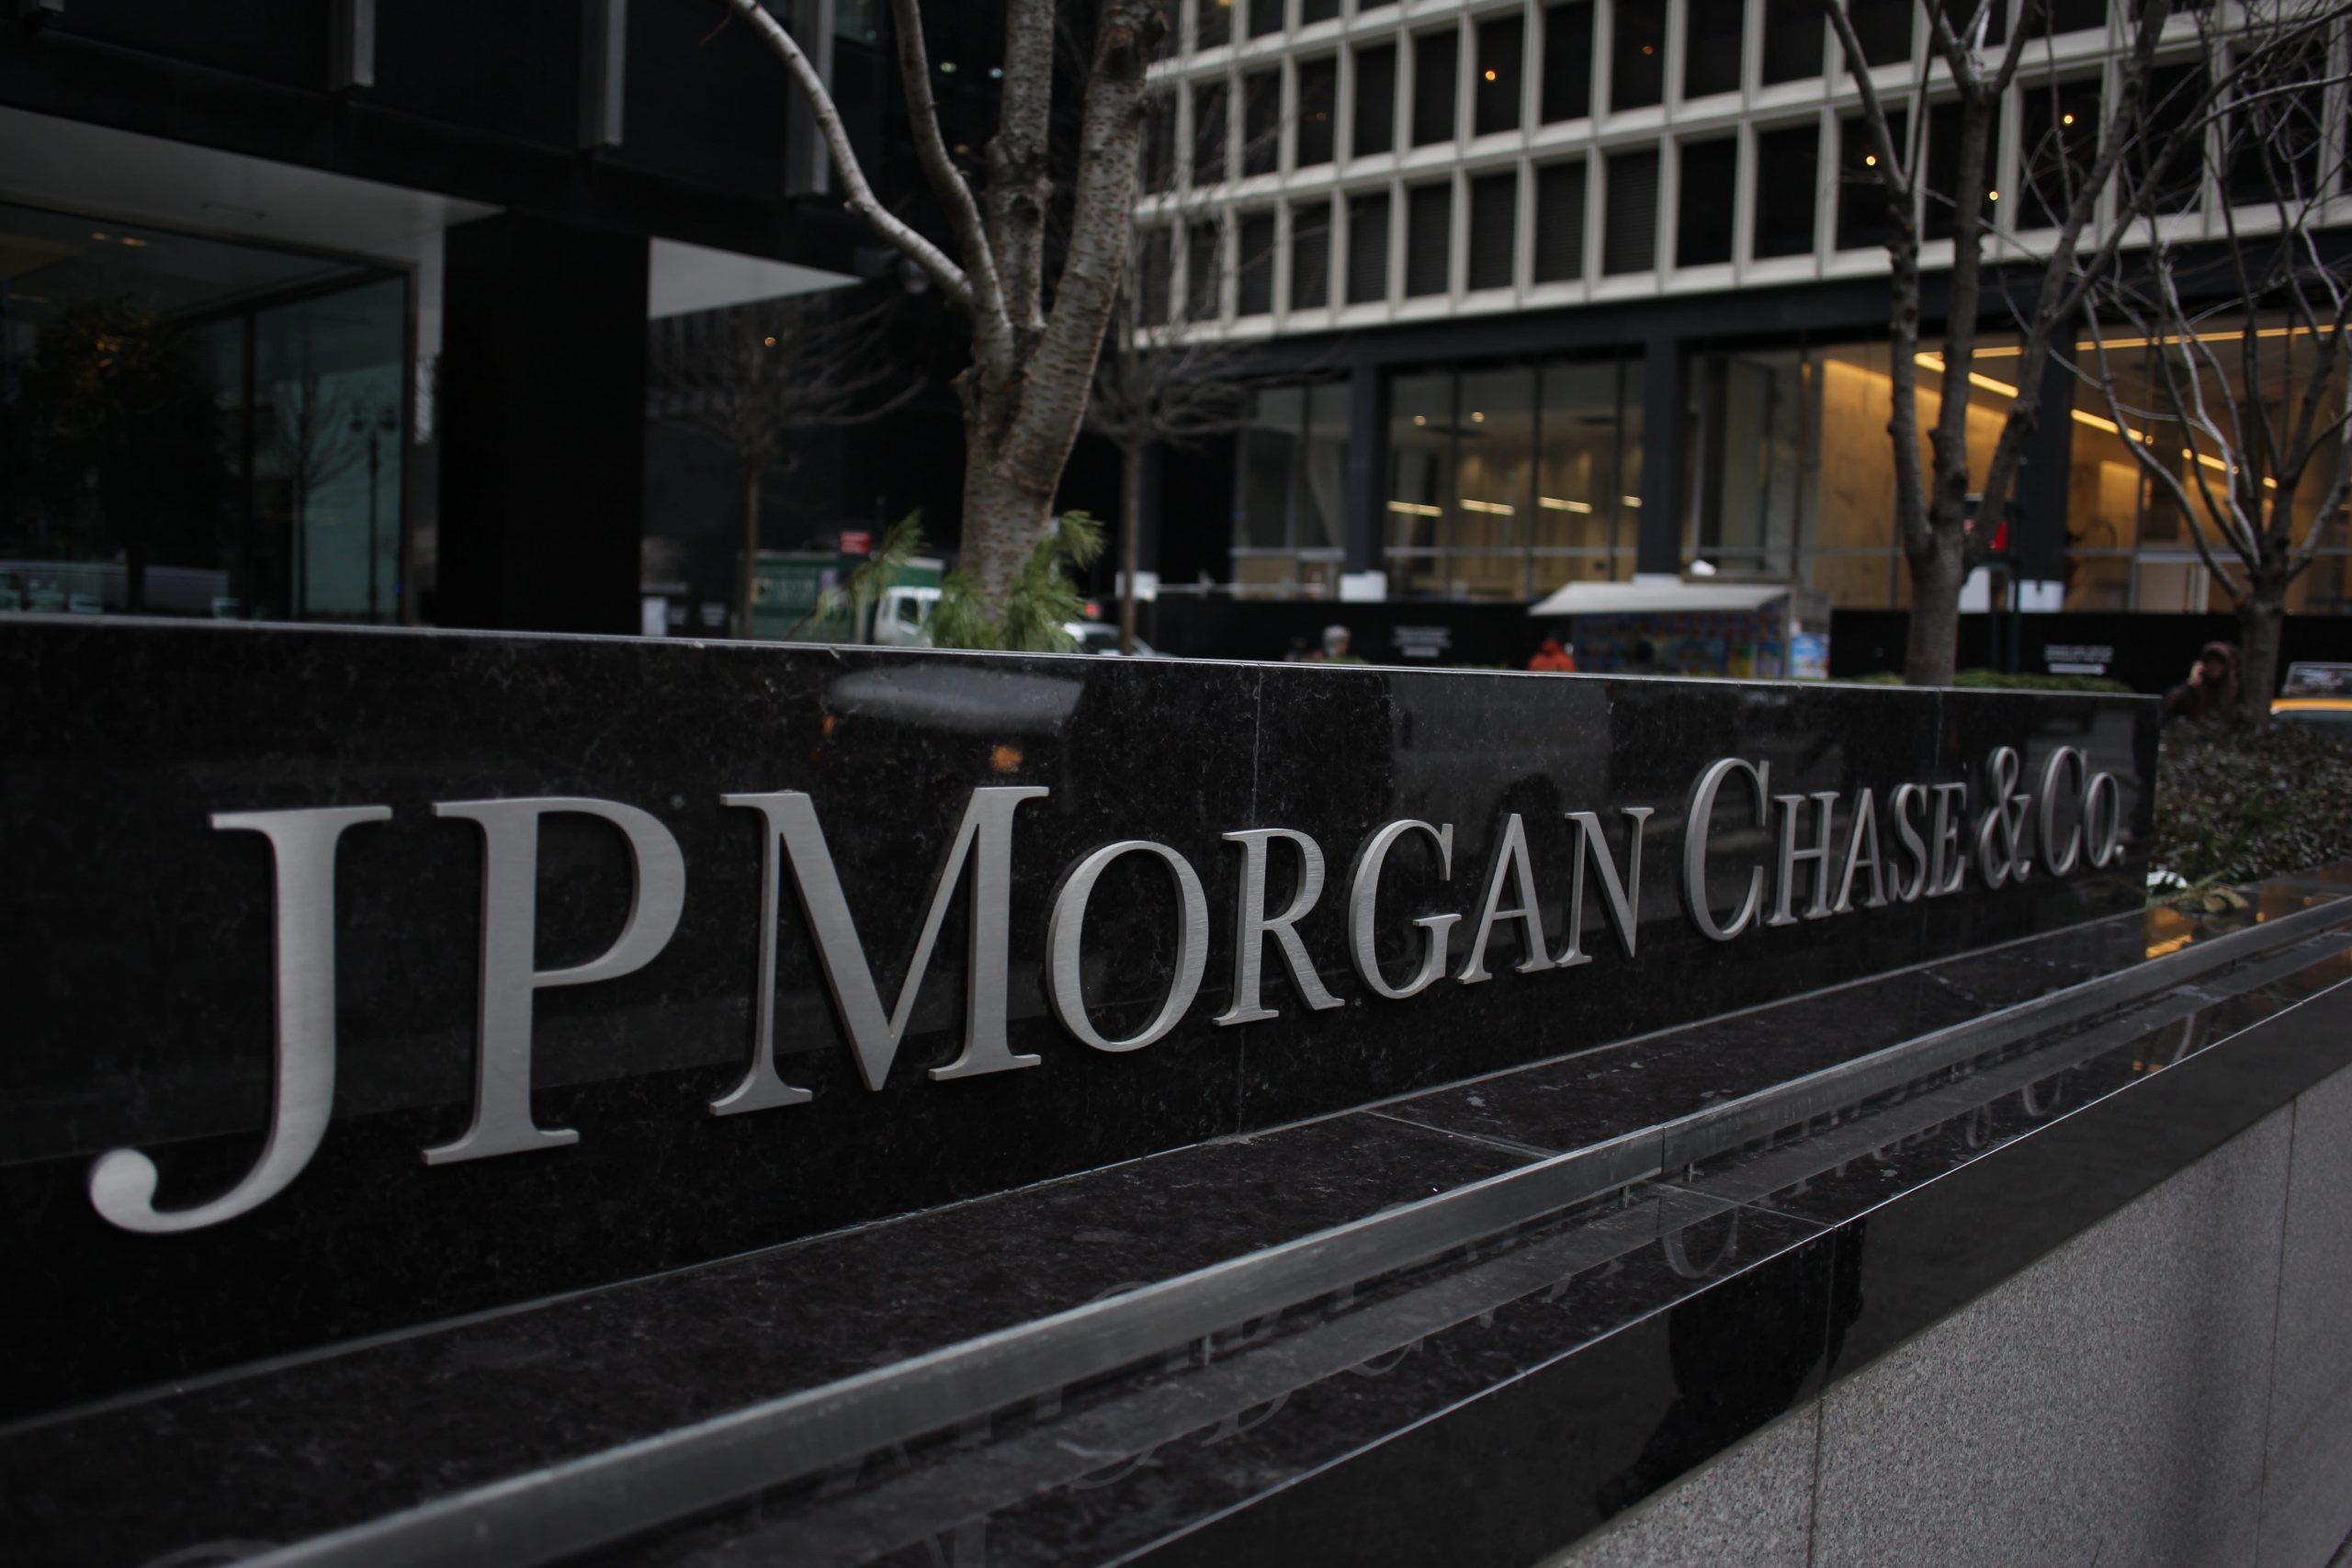 Technology could help sustainable investing turn the corner, says JPMorgan